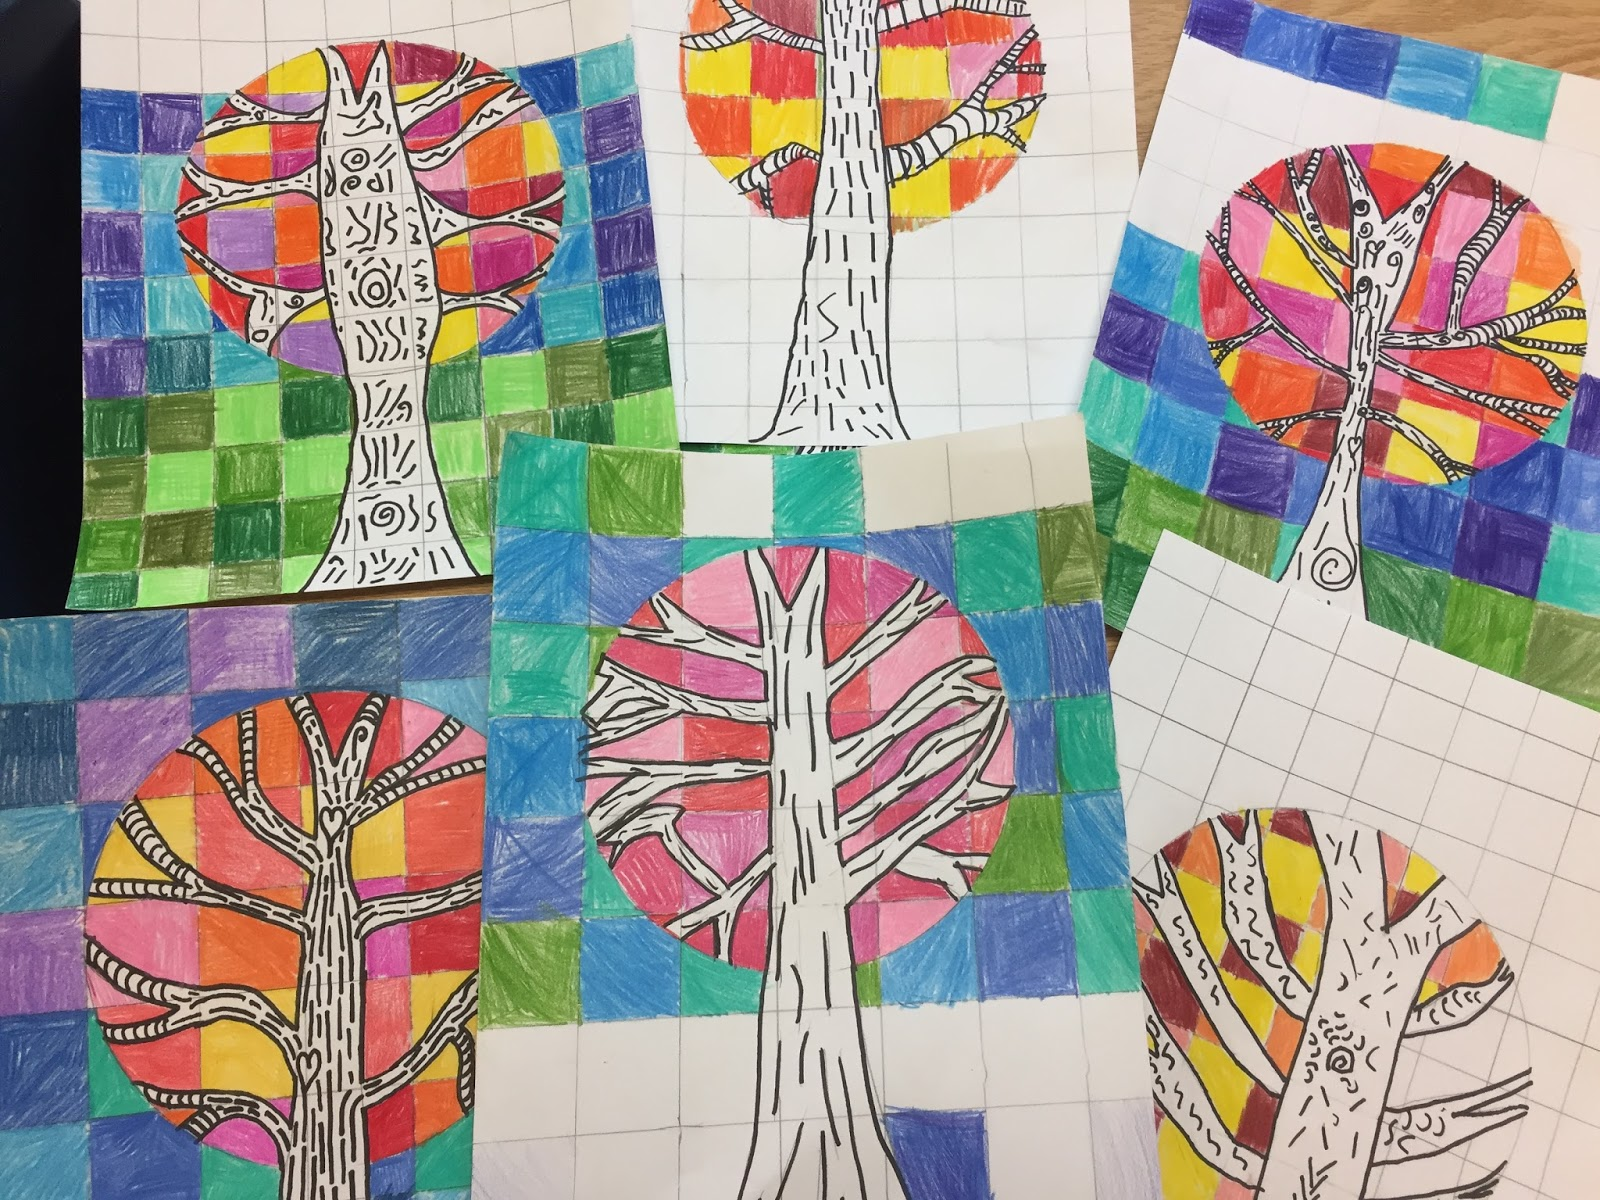 Elements Of Visual Arts : Room with mme mcallister visual arts warm cool trees